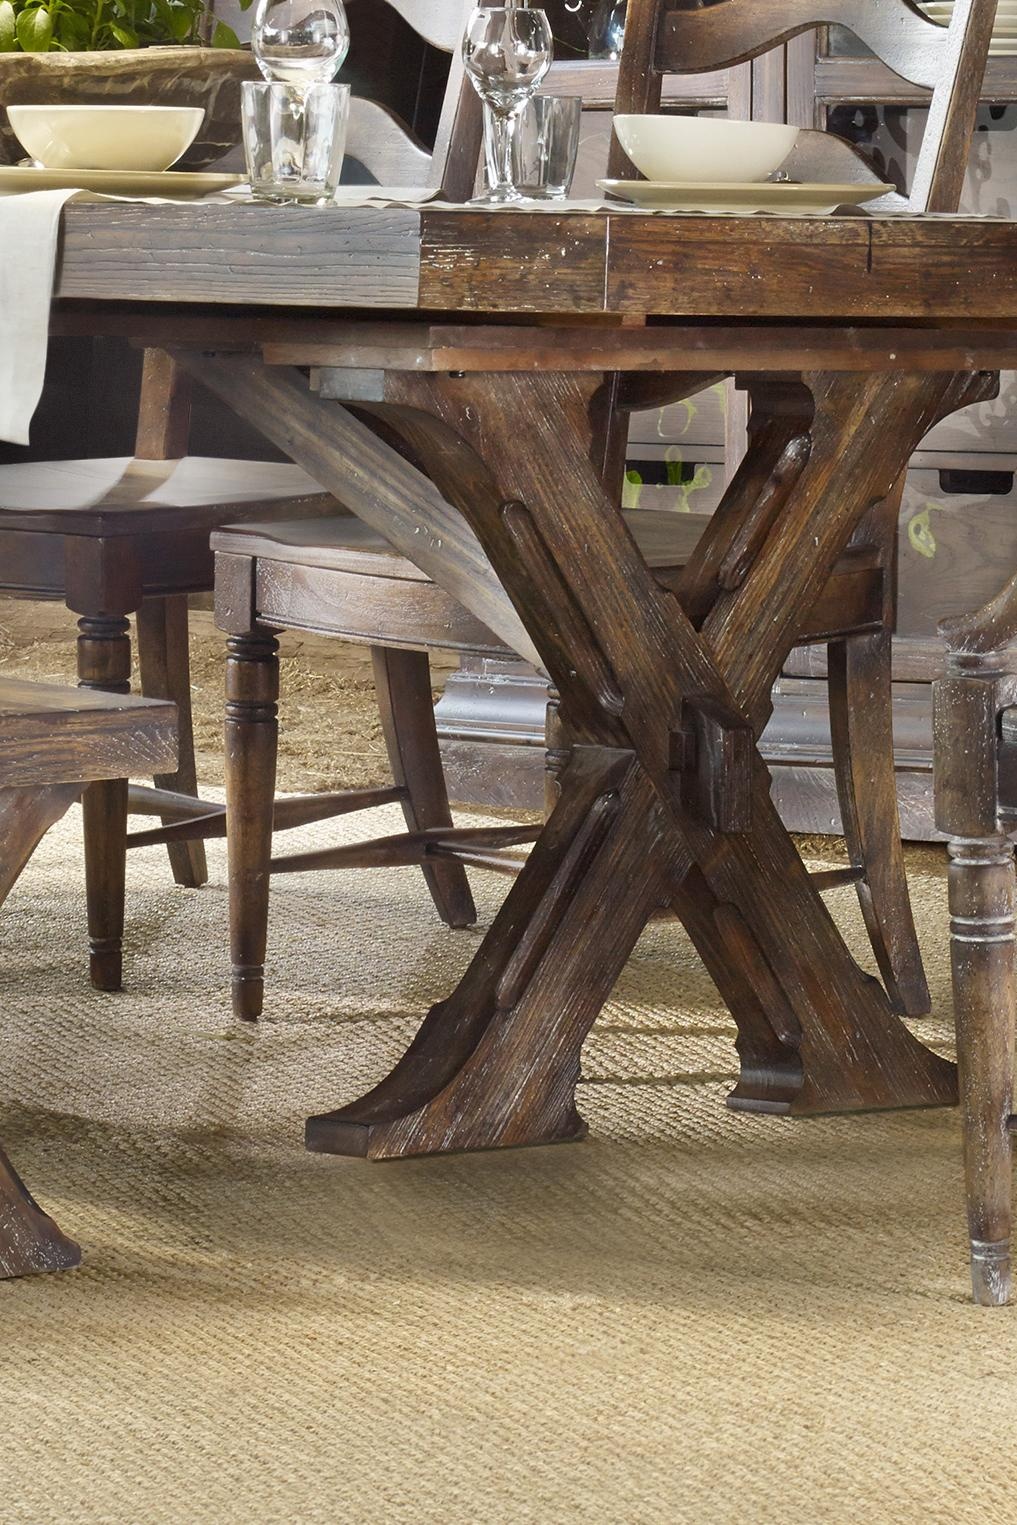 willow bend 5343 by hooker furniture wayside furniture willow bend 5343 by hooker furniture wayside furniture hooker furniture willow bend dealer